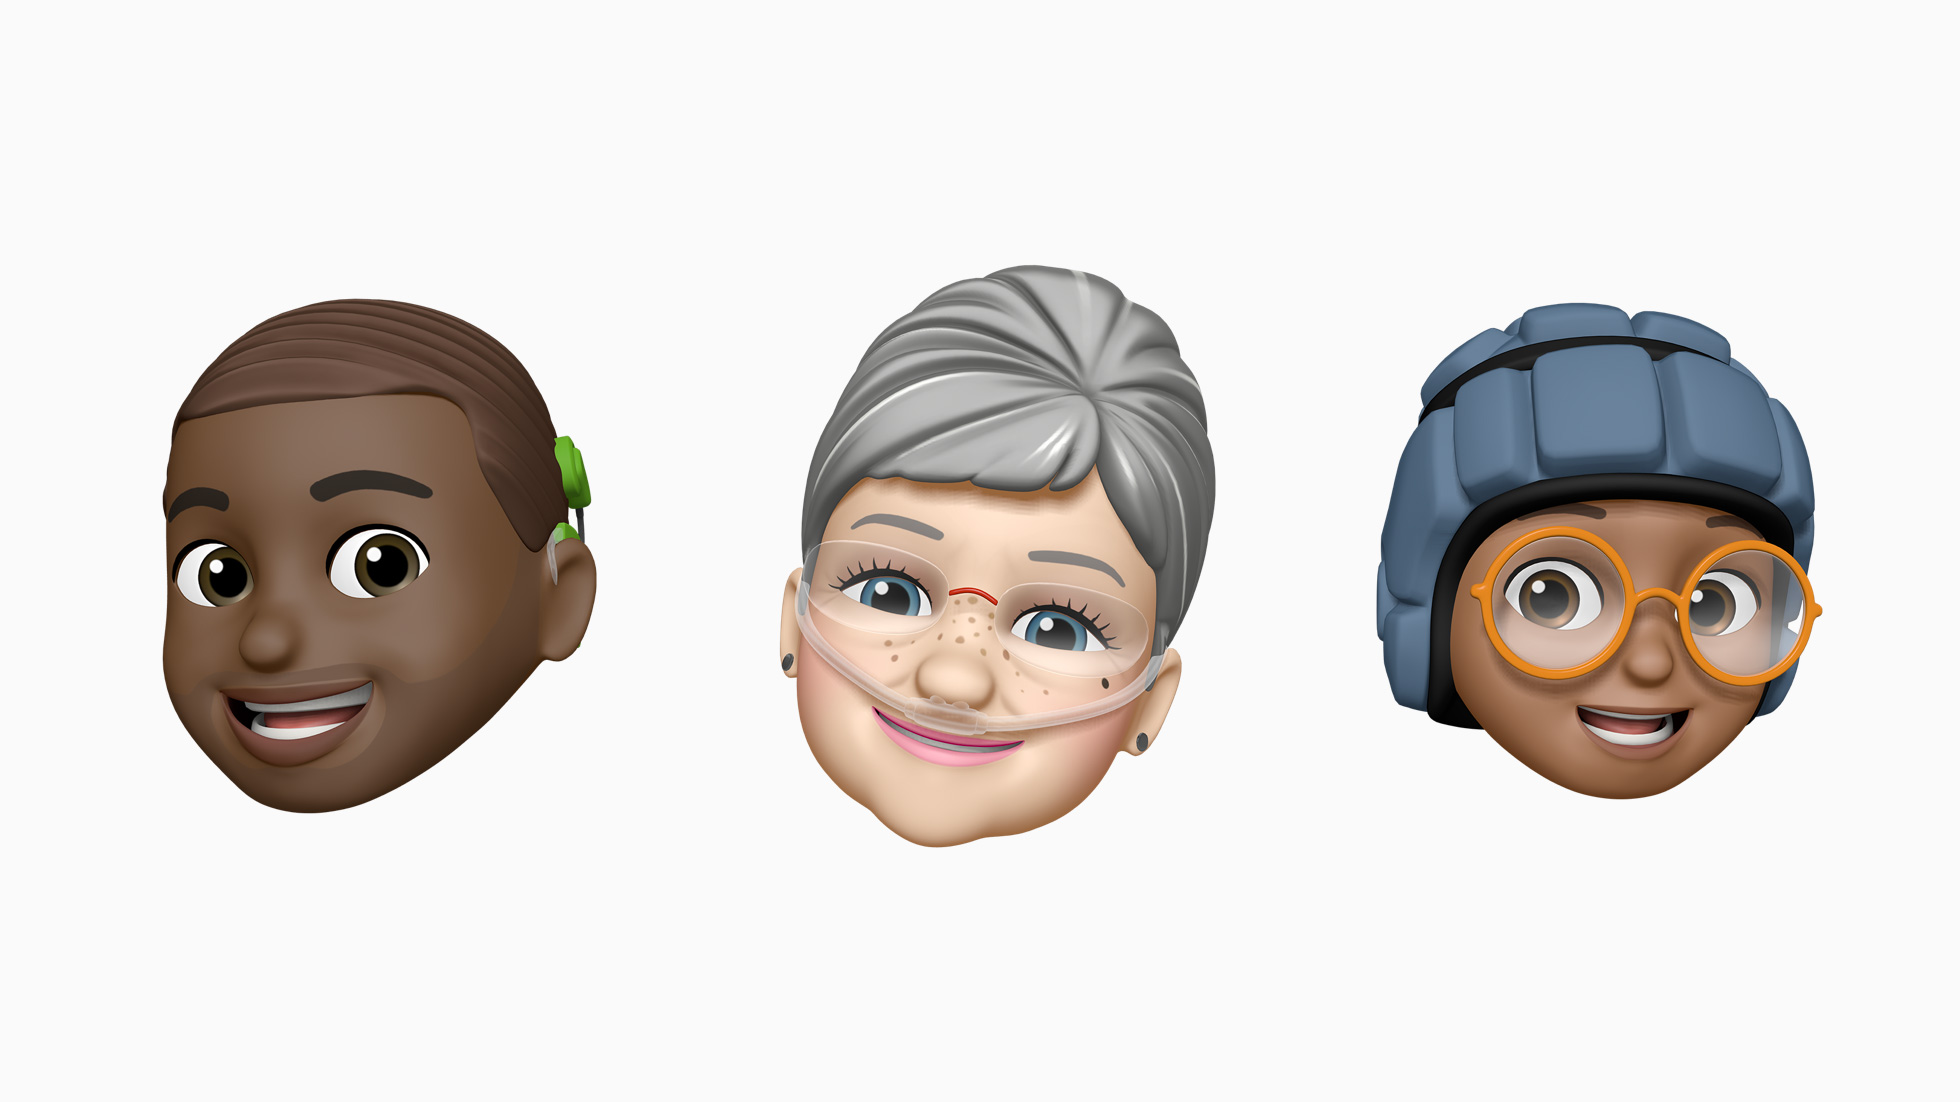 Images of Apple Memoji with a cochlear implant, an oxygen tube, and a soft helmet.